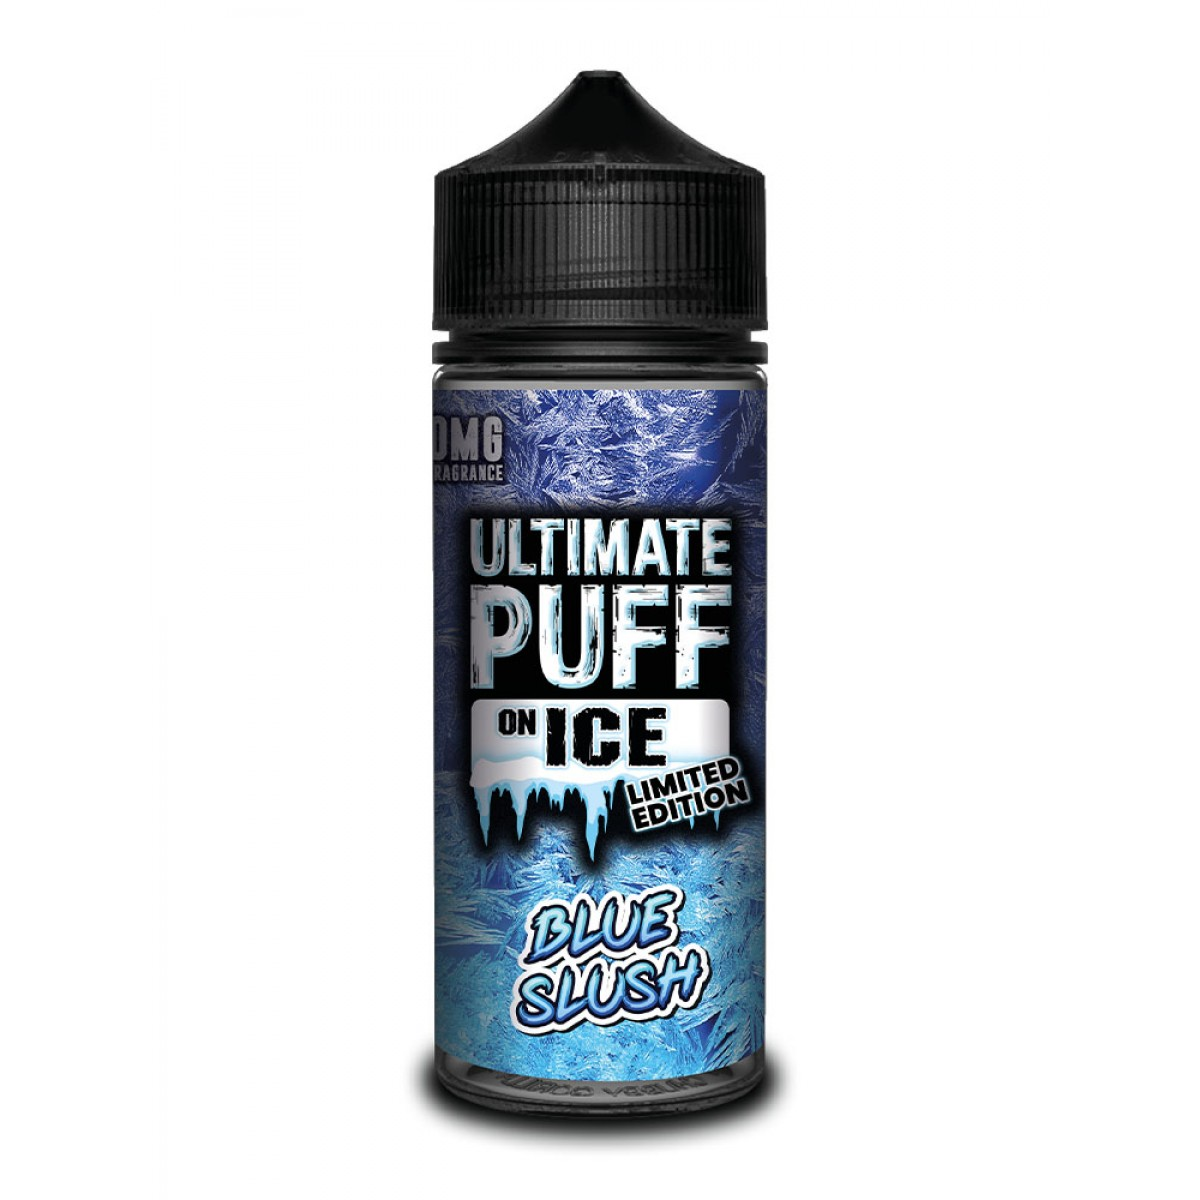 BLUE SLUSH SHORTFILL BY ULTIMATE PUFF ON ICE